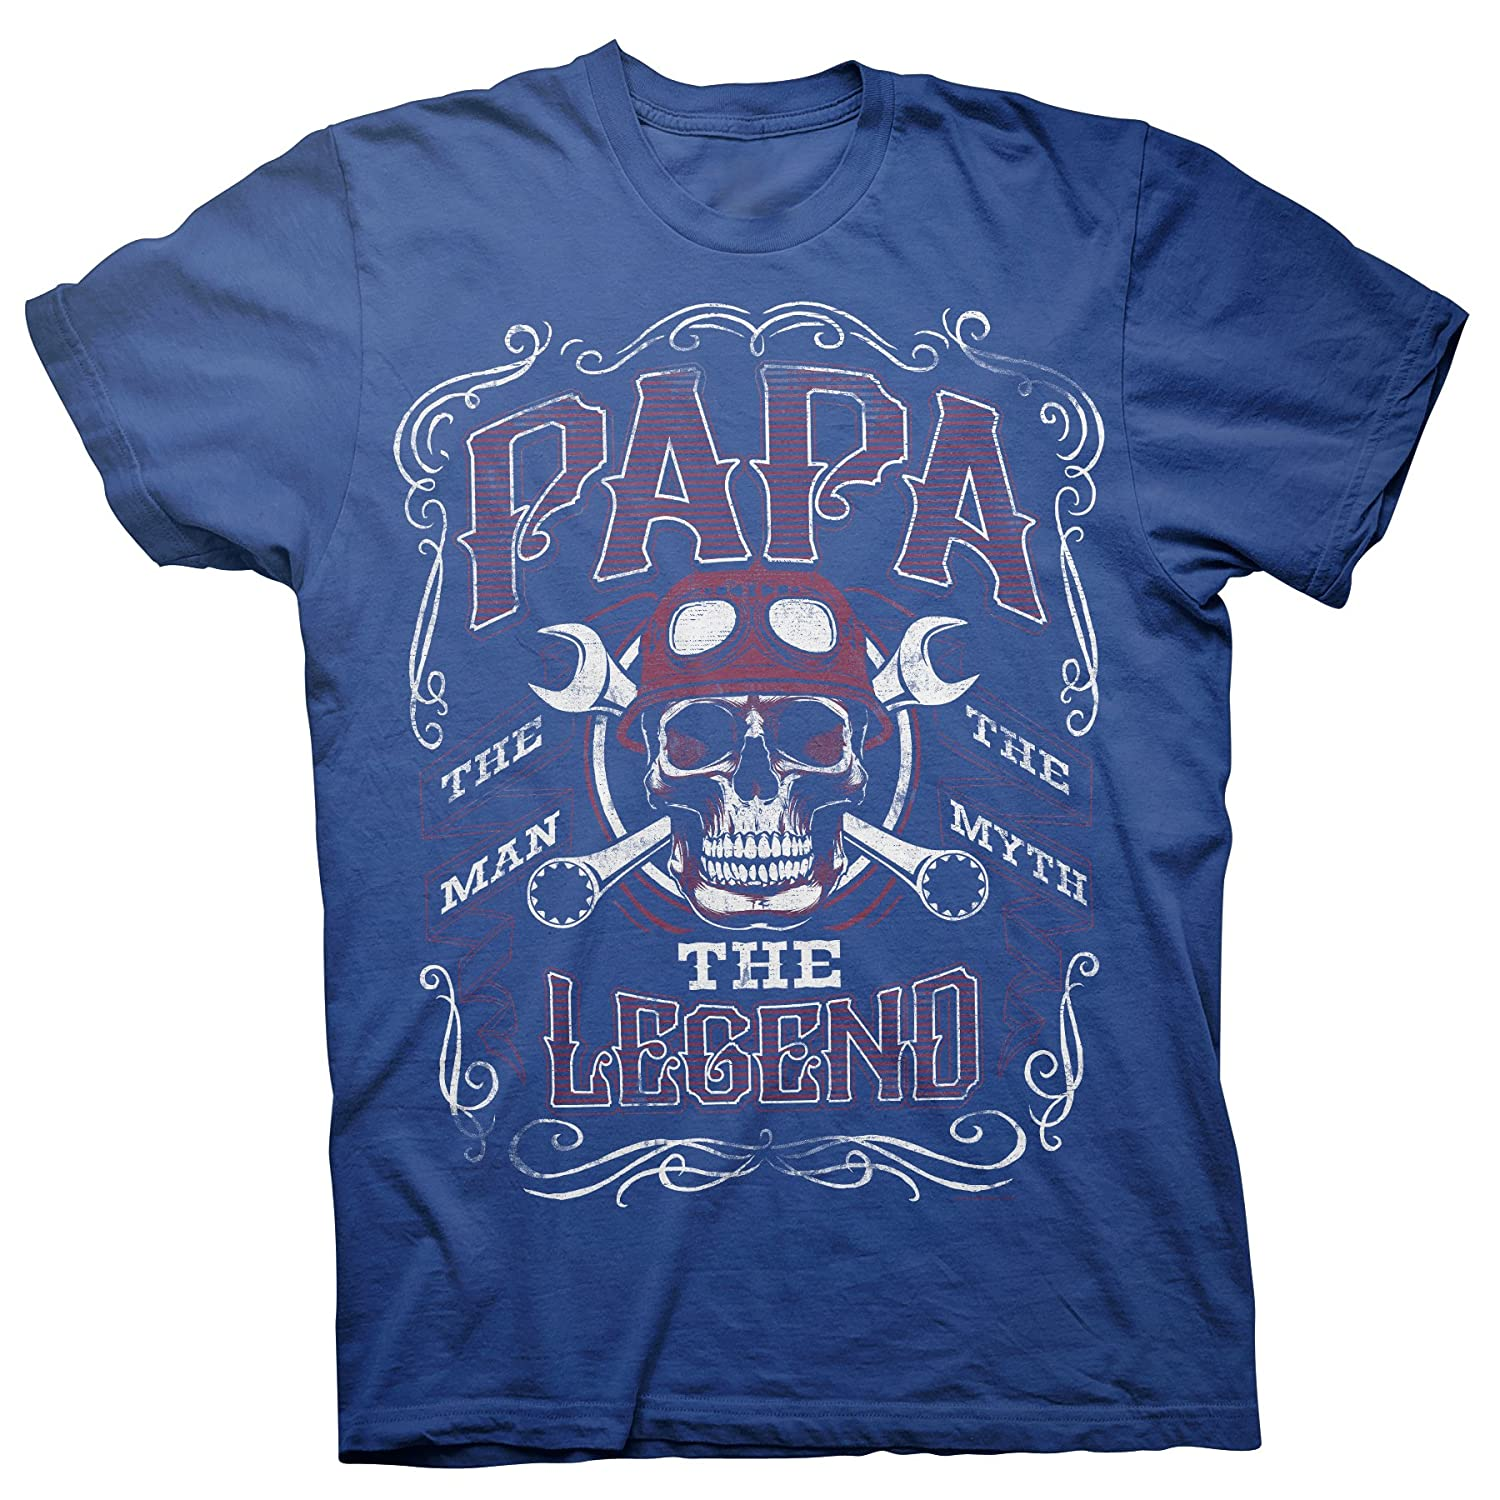 2fcc28c9 Amazon.com: Papa The Man The Myth The Legend - Fathers Day Mens T-Shirt:  Clothing